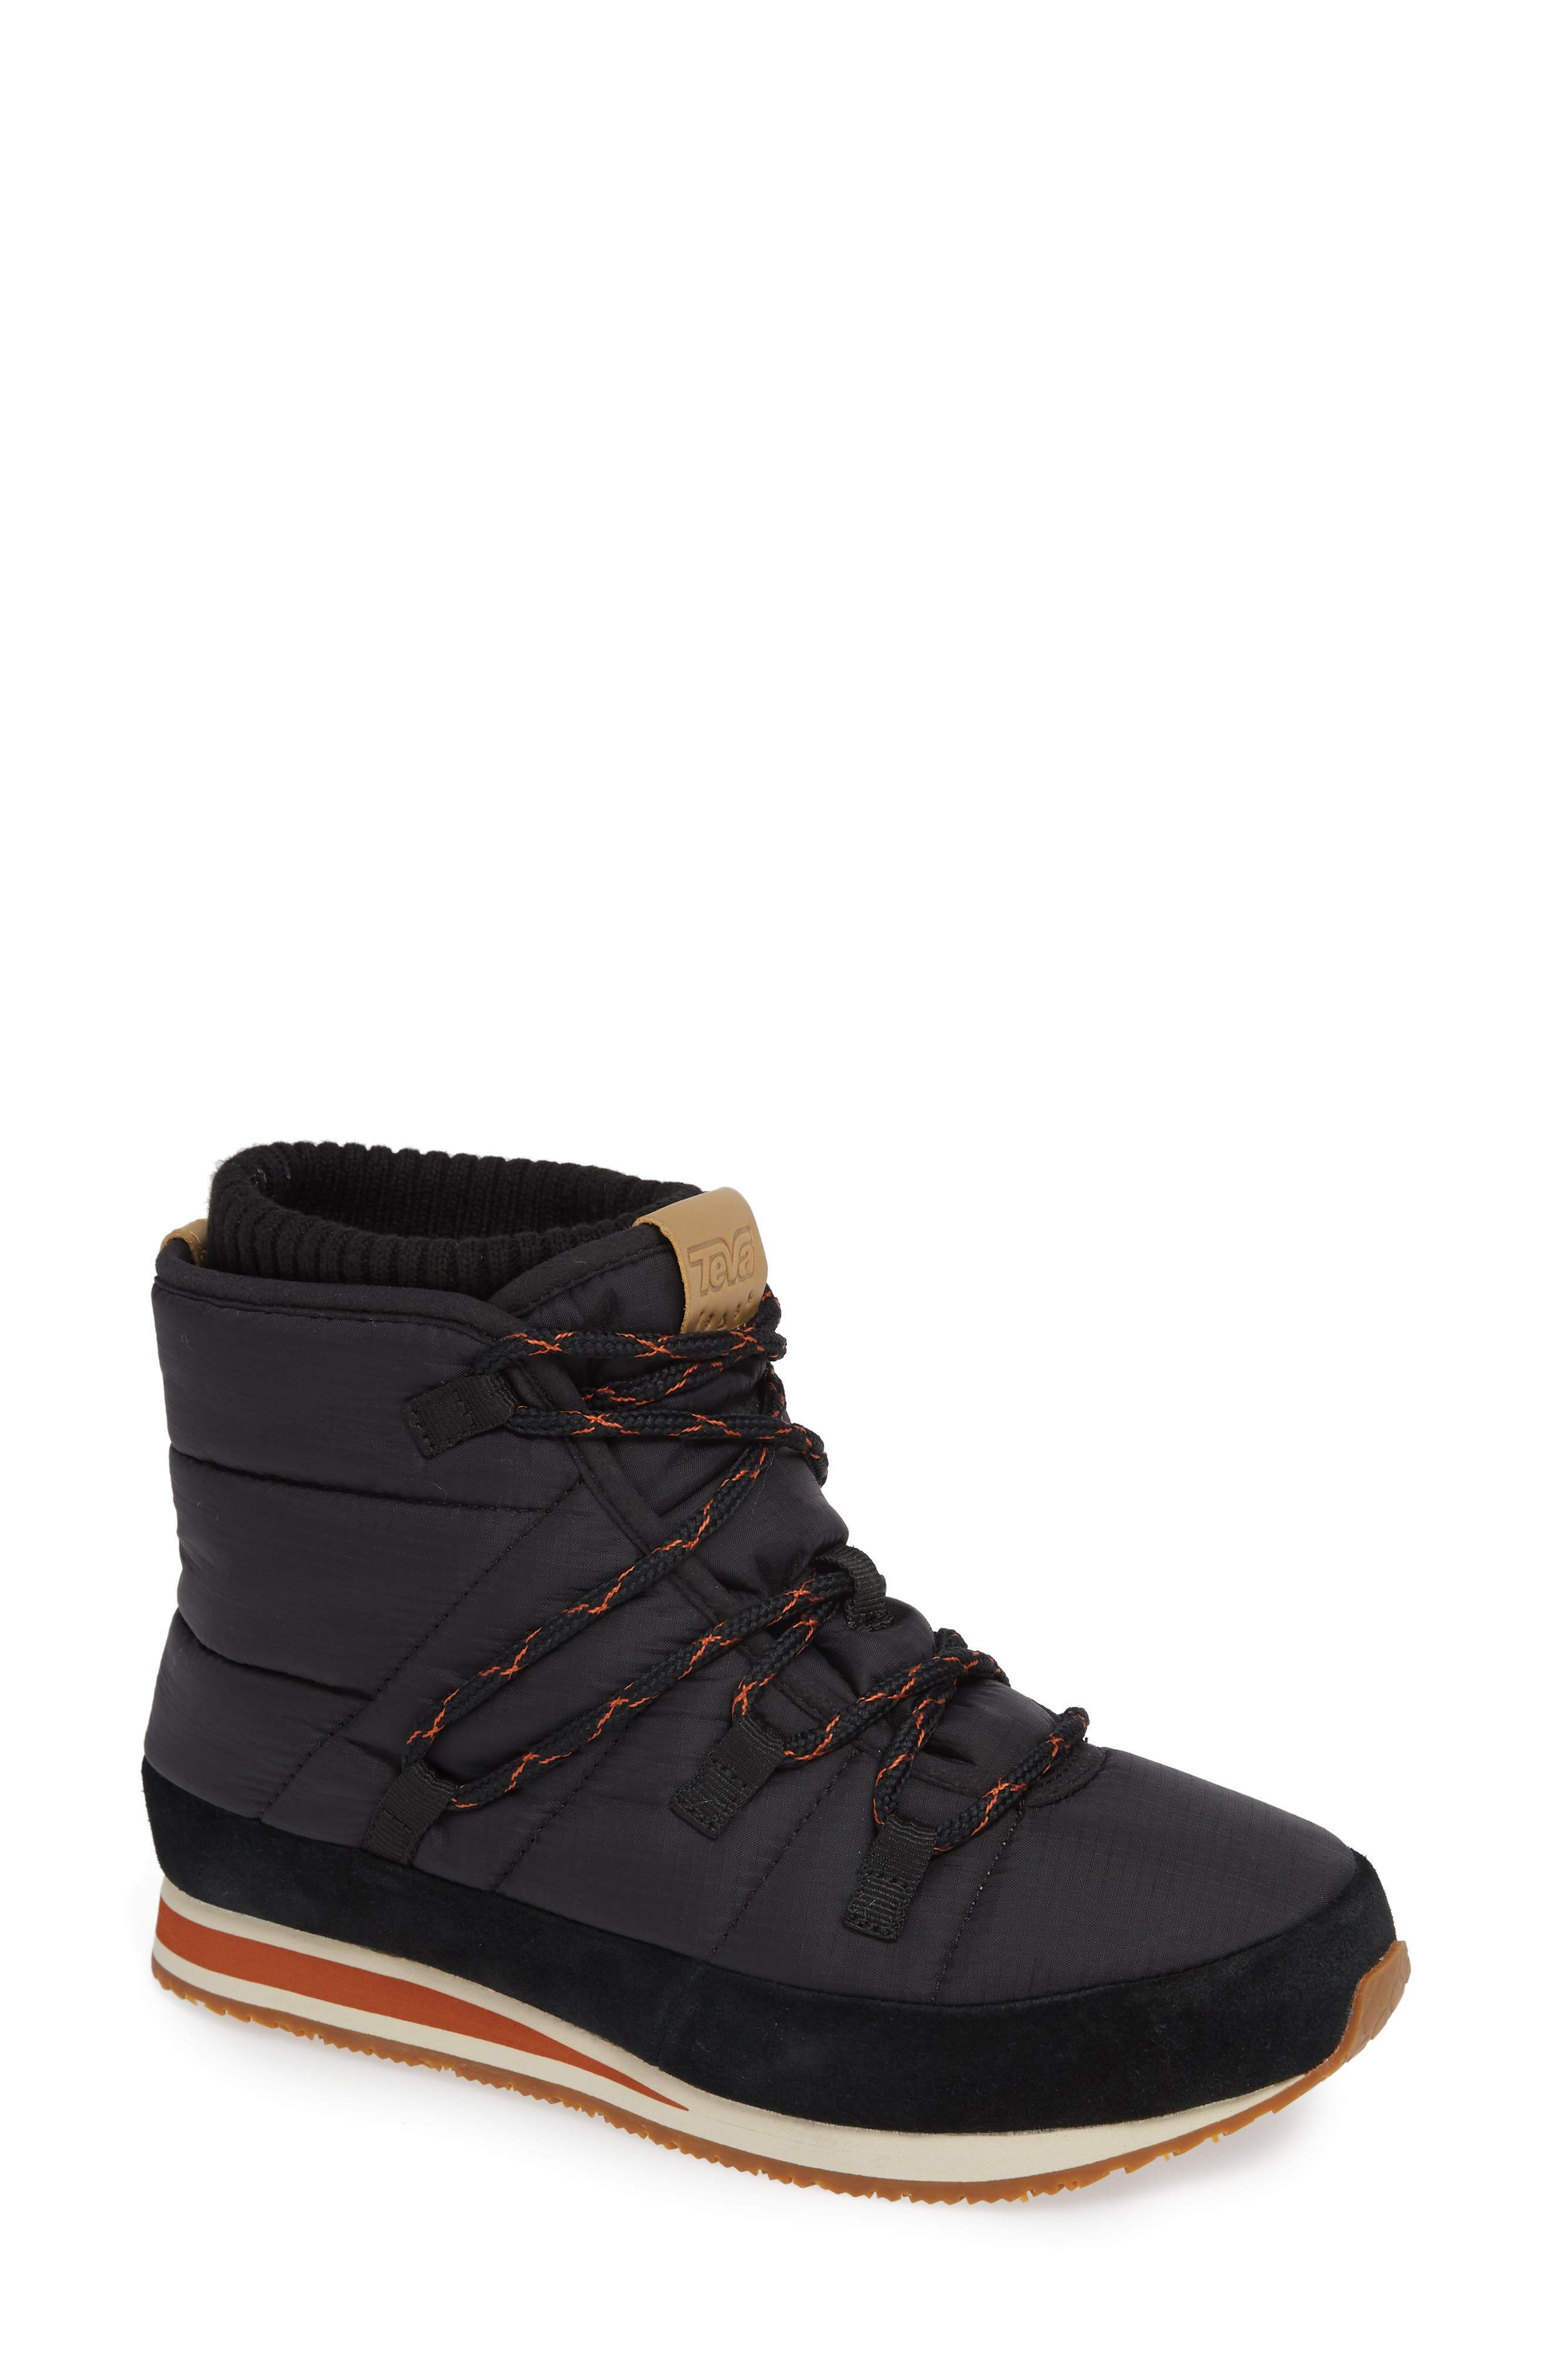 TEVA Ember Lace-Up Winter Bootie, Main, color, BLACK FABRIC